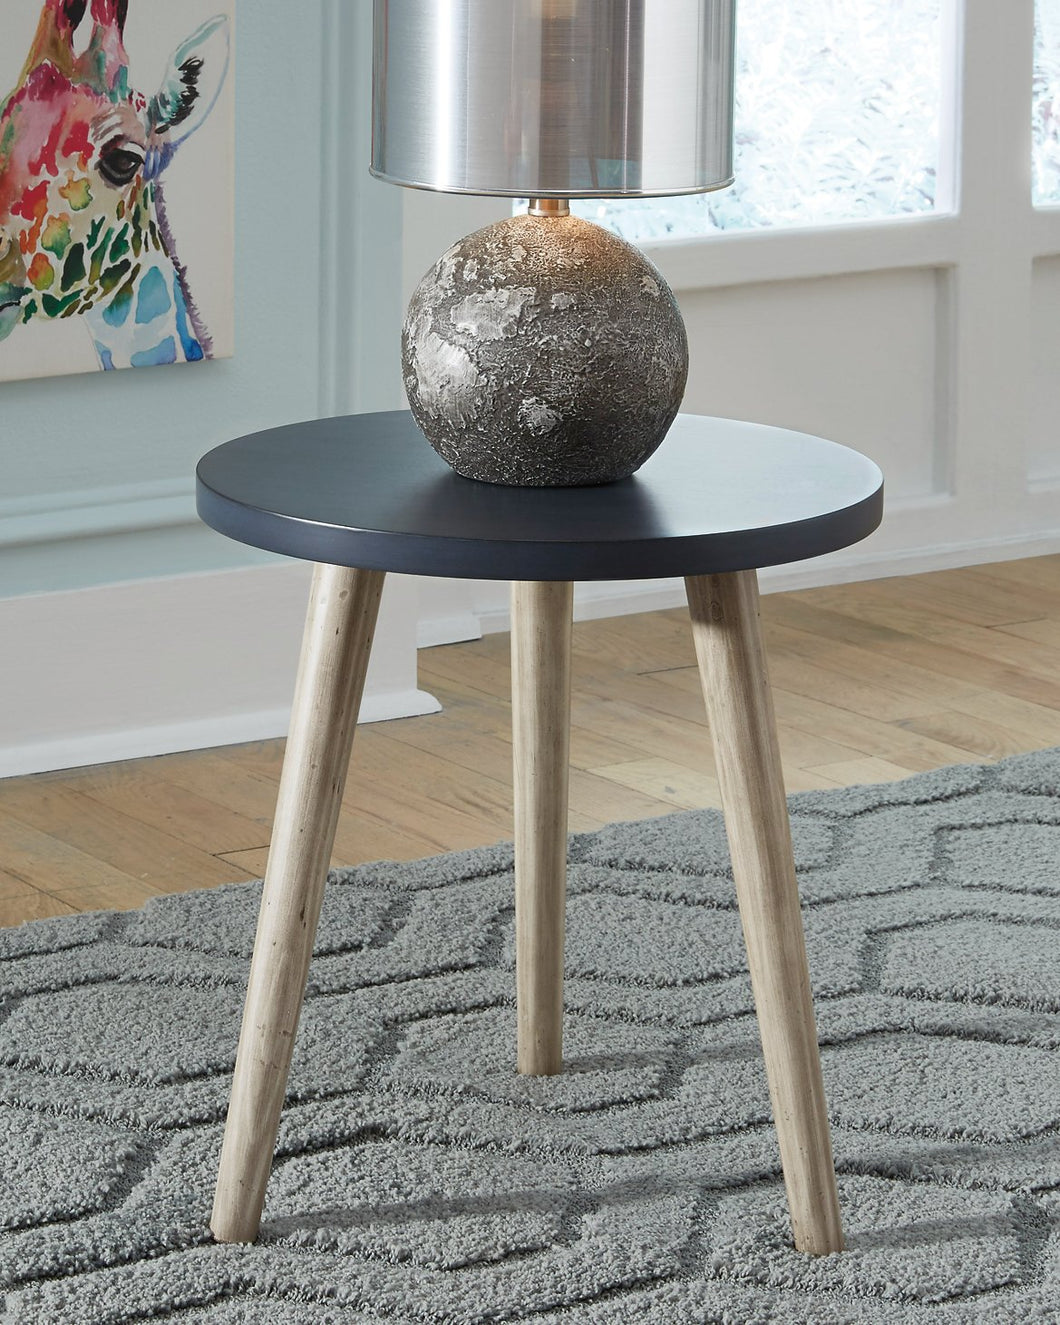 Fullersen Signature Design by Ashley Accent Table image